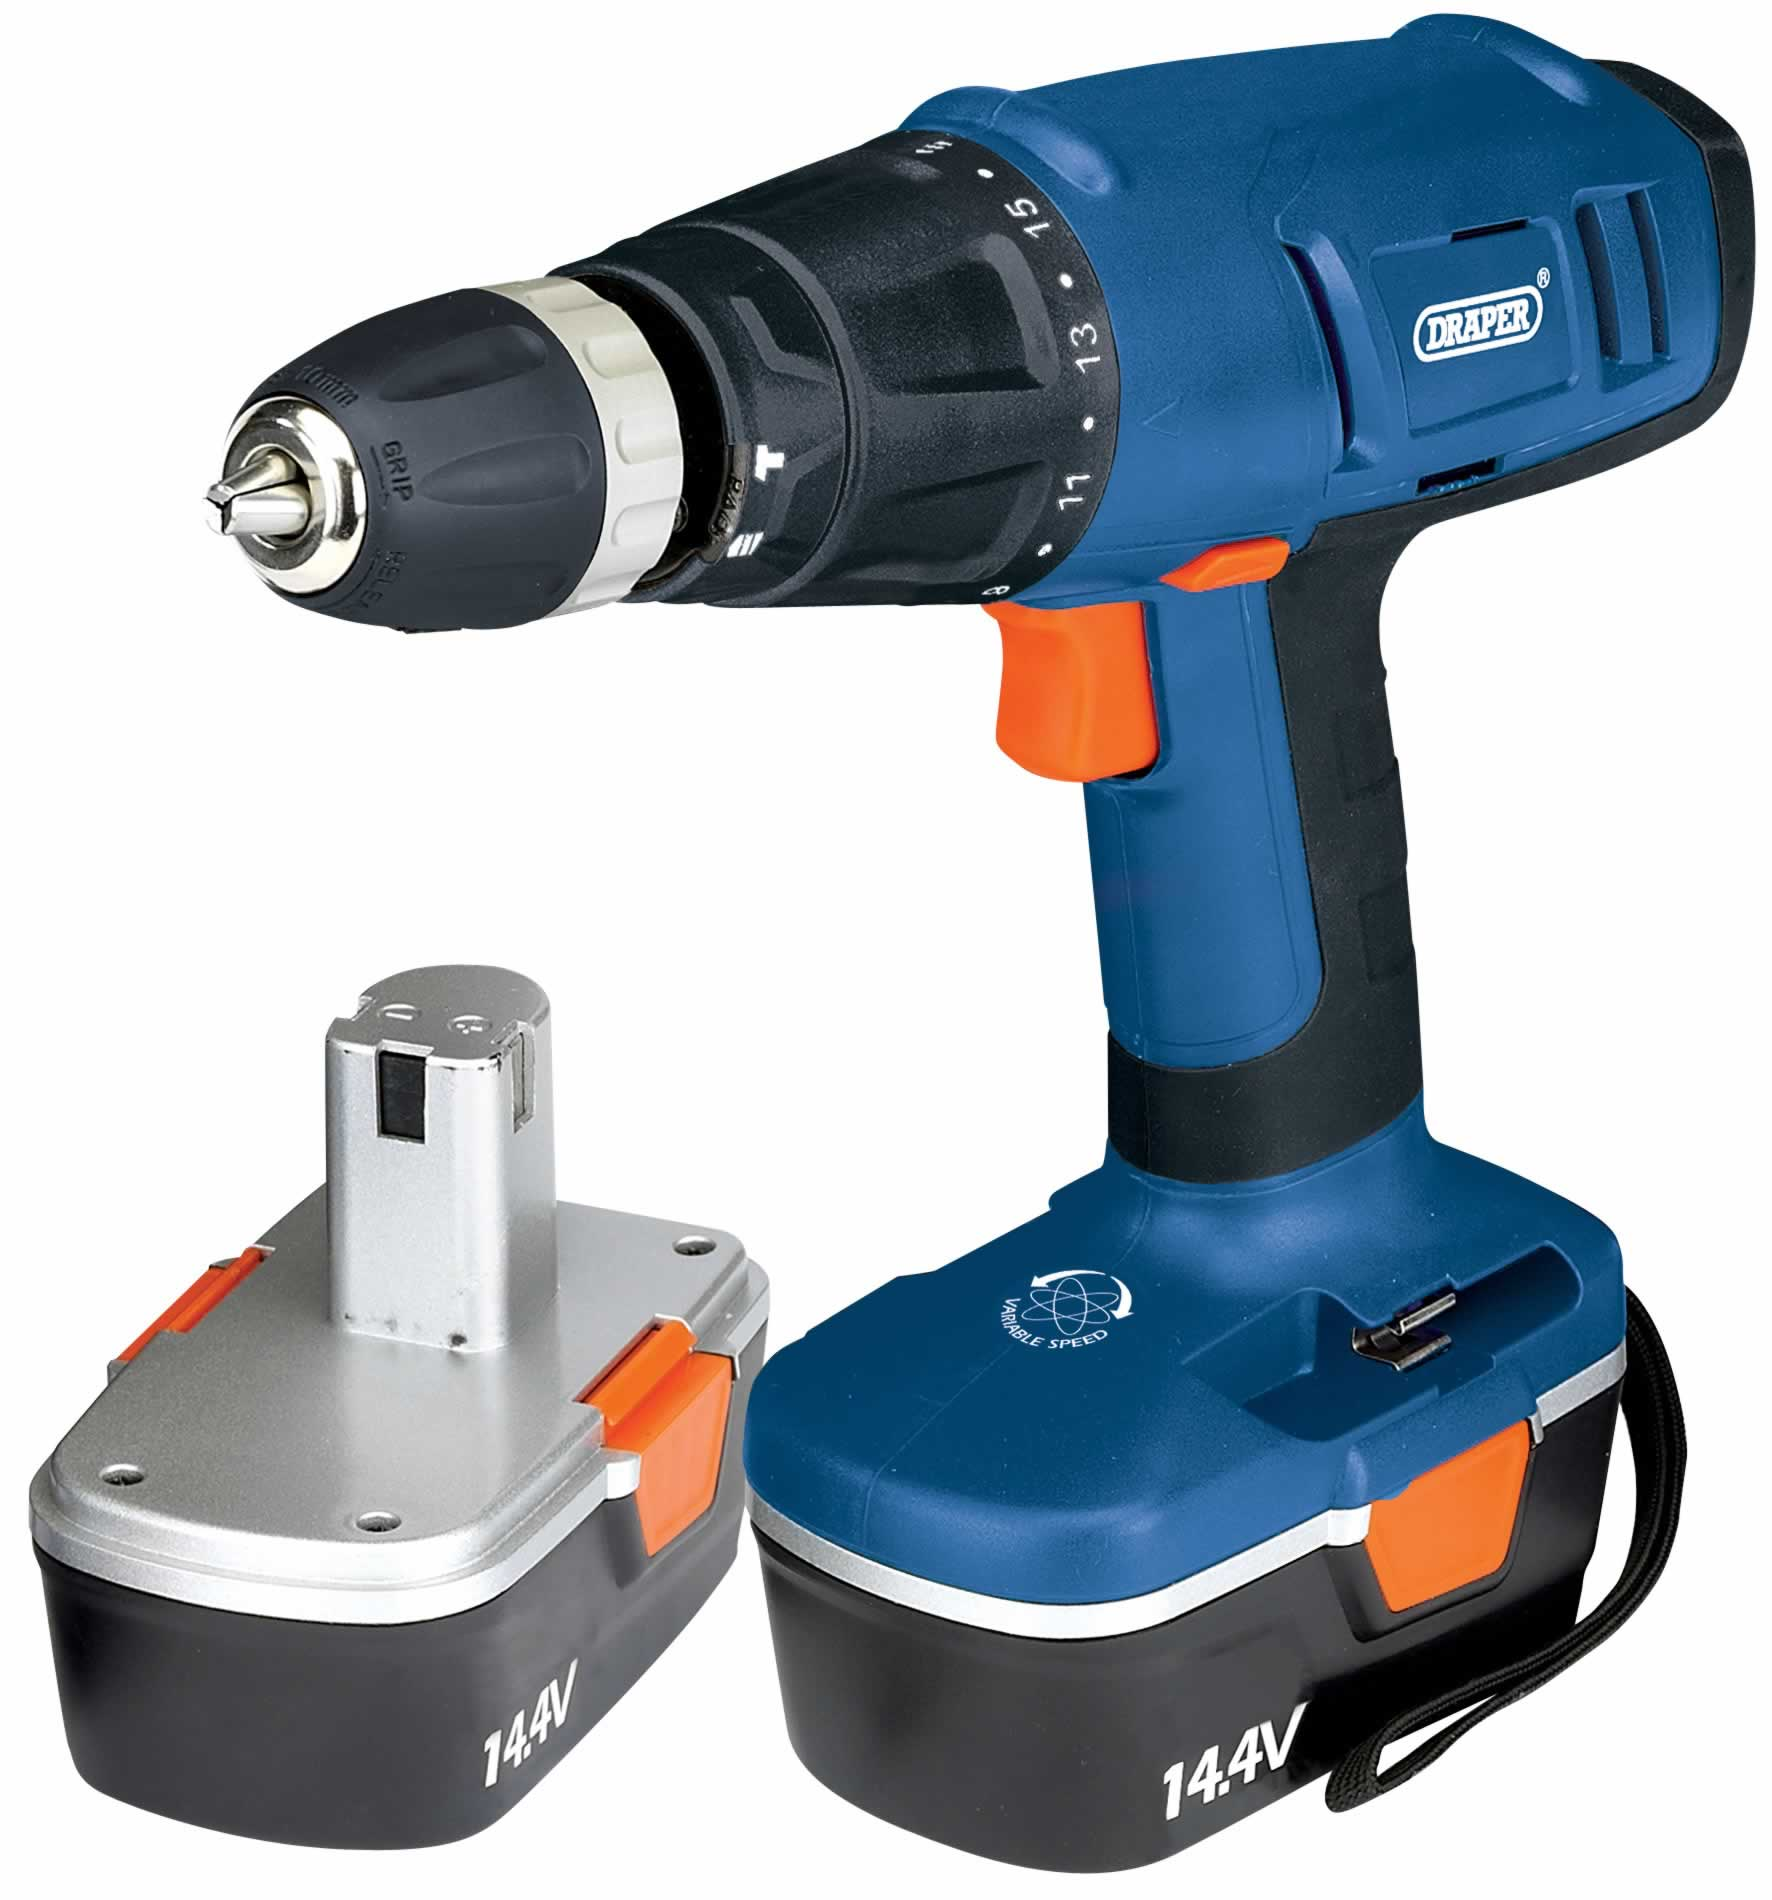 14.4V CORDLESS HAMMER DRILL WITH TWO BATTERIES